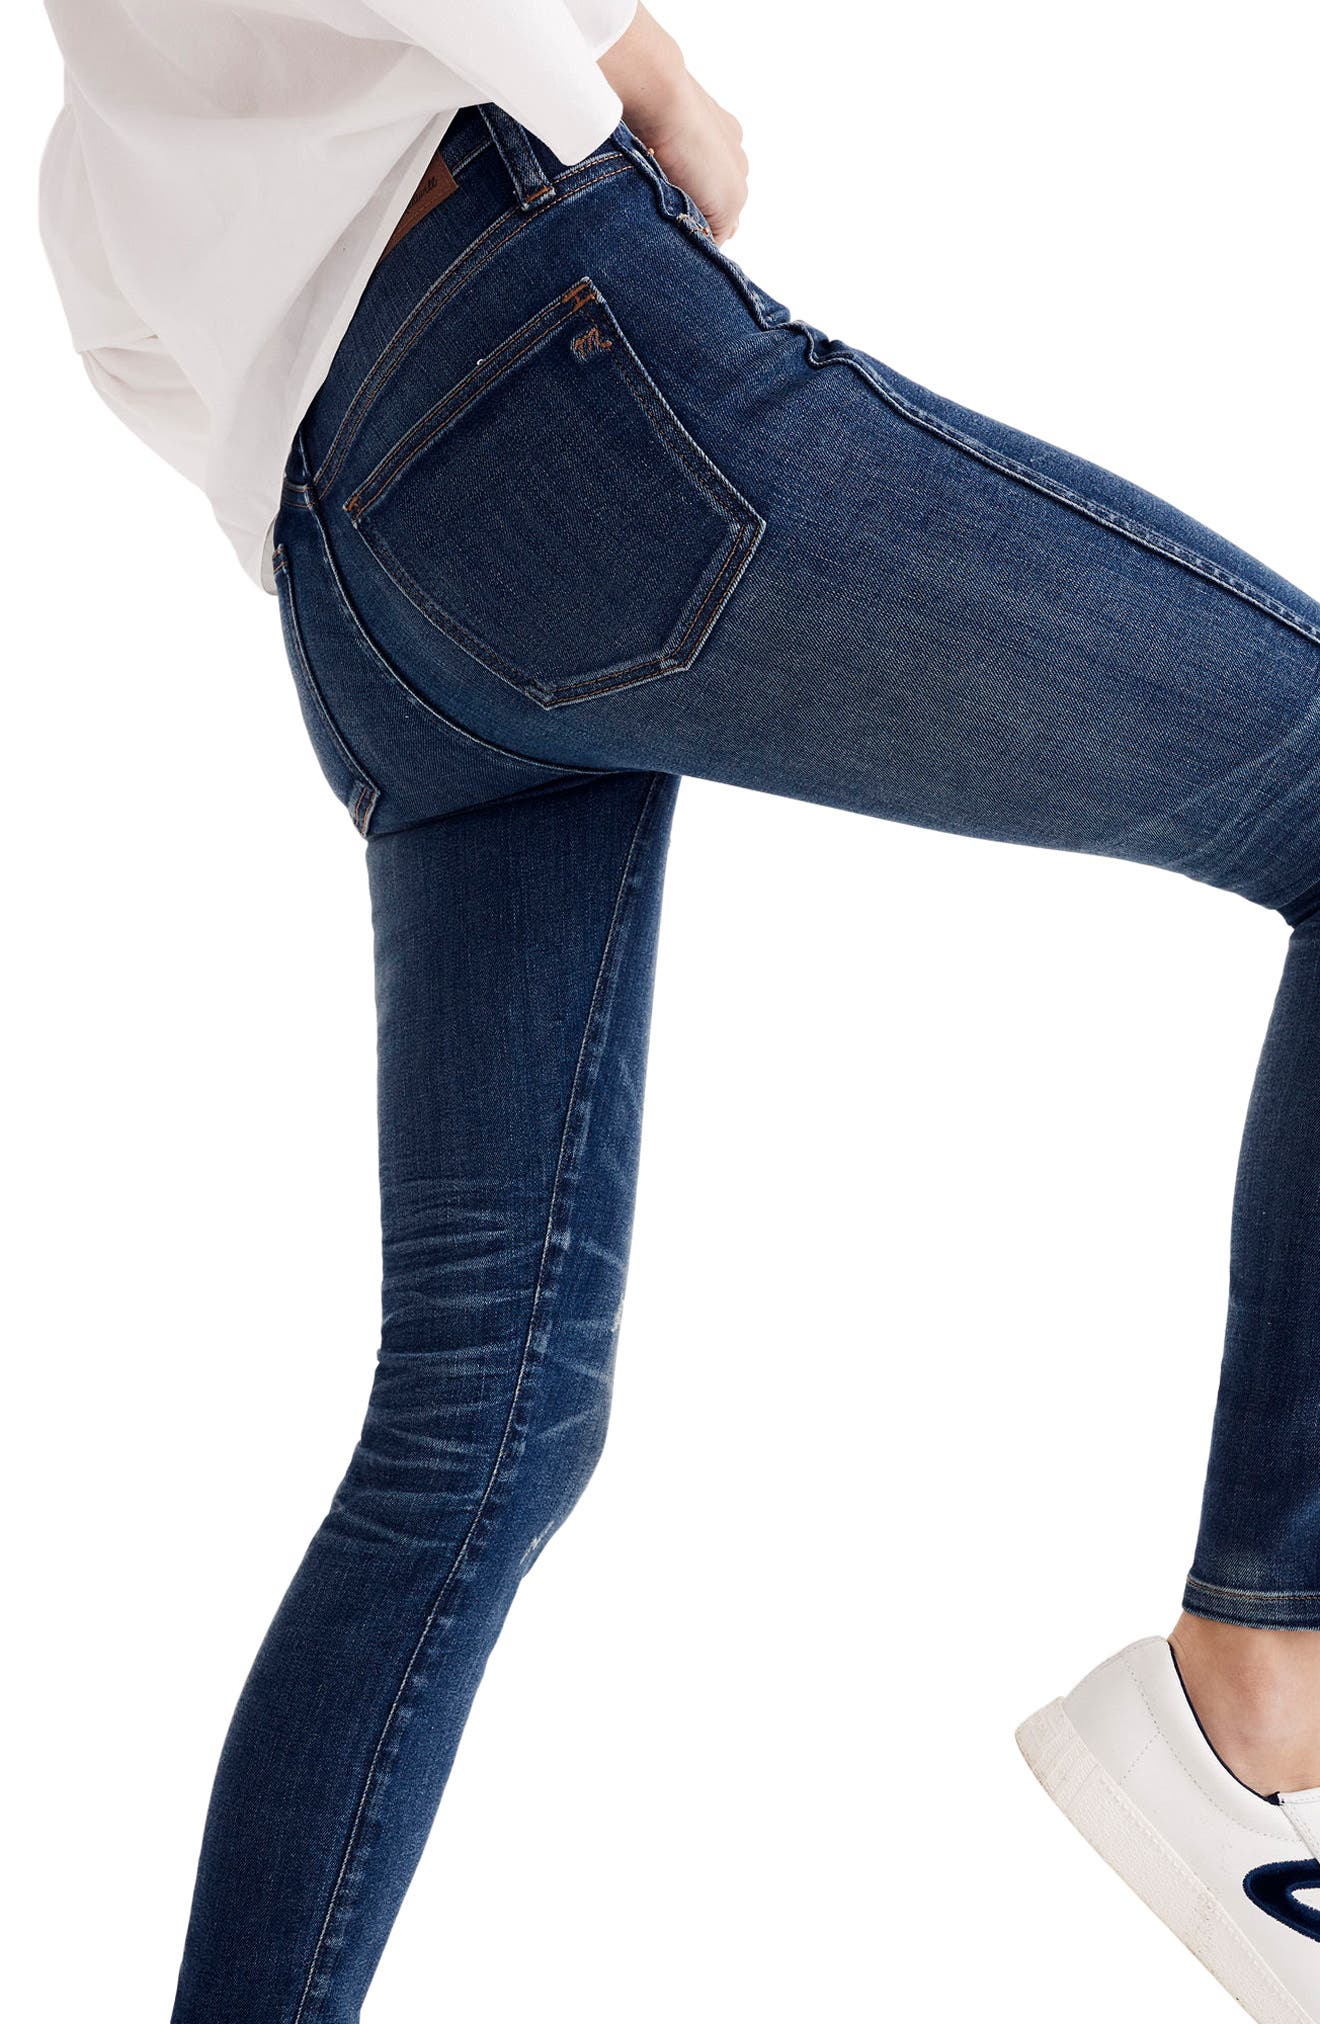 9-Inch High Waist Skinny Jeans,                             Alternate thumbnail 2, color,                             403